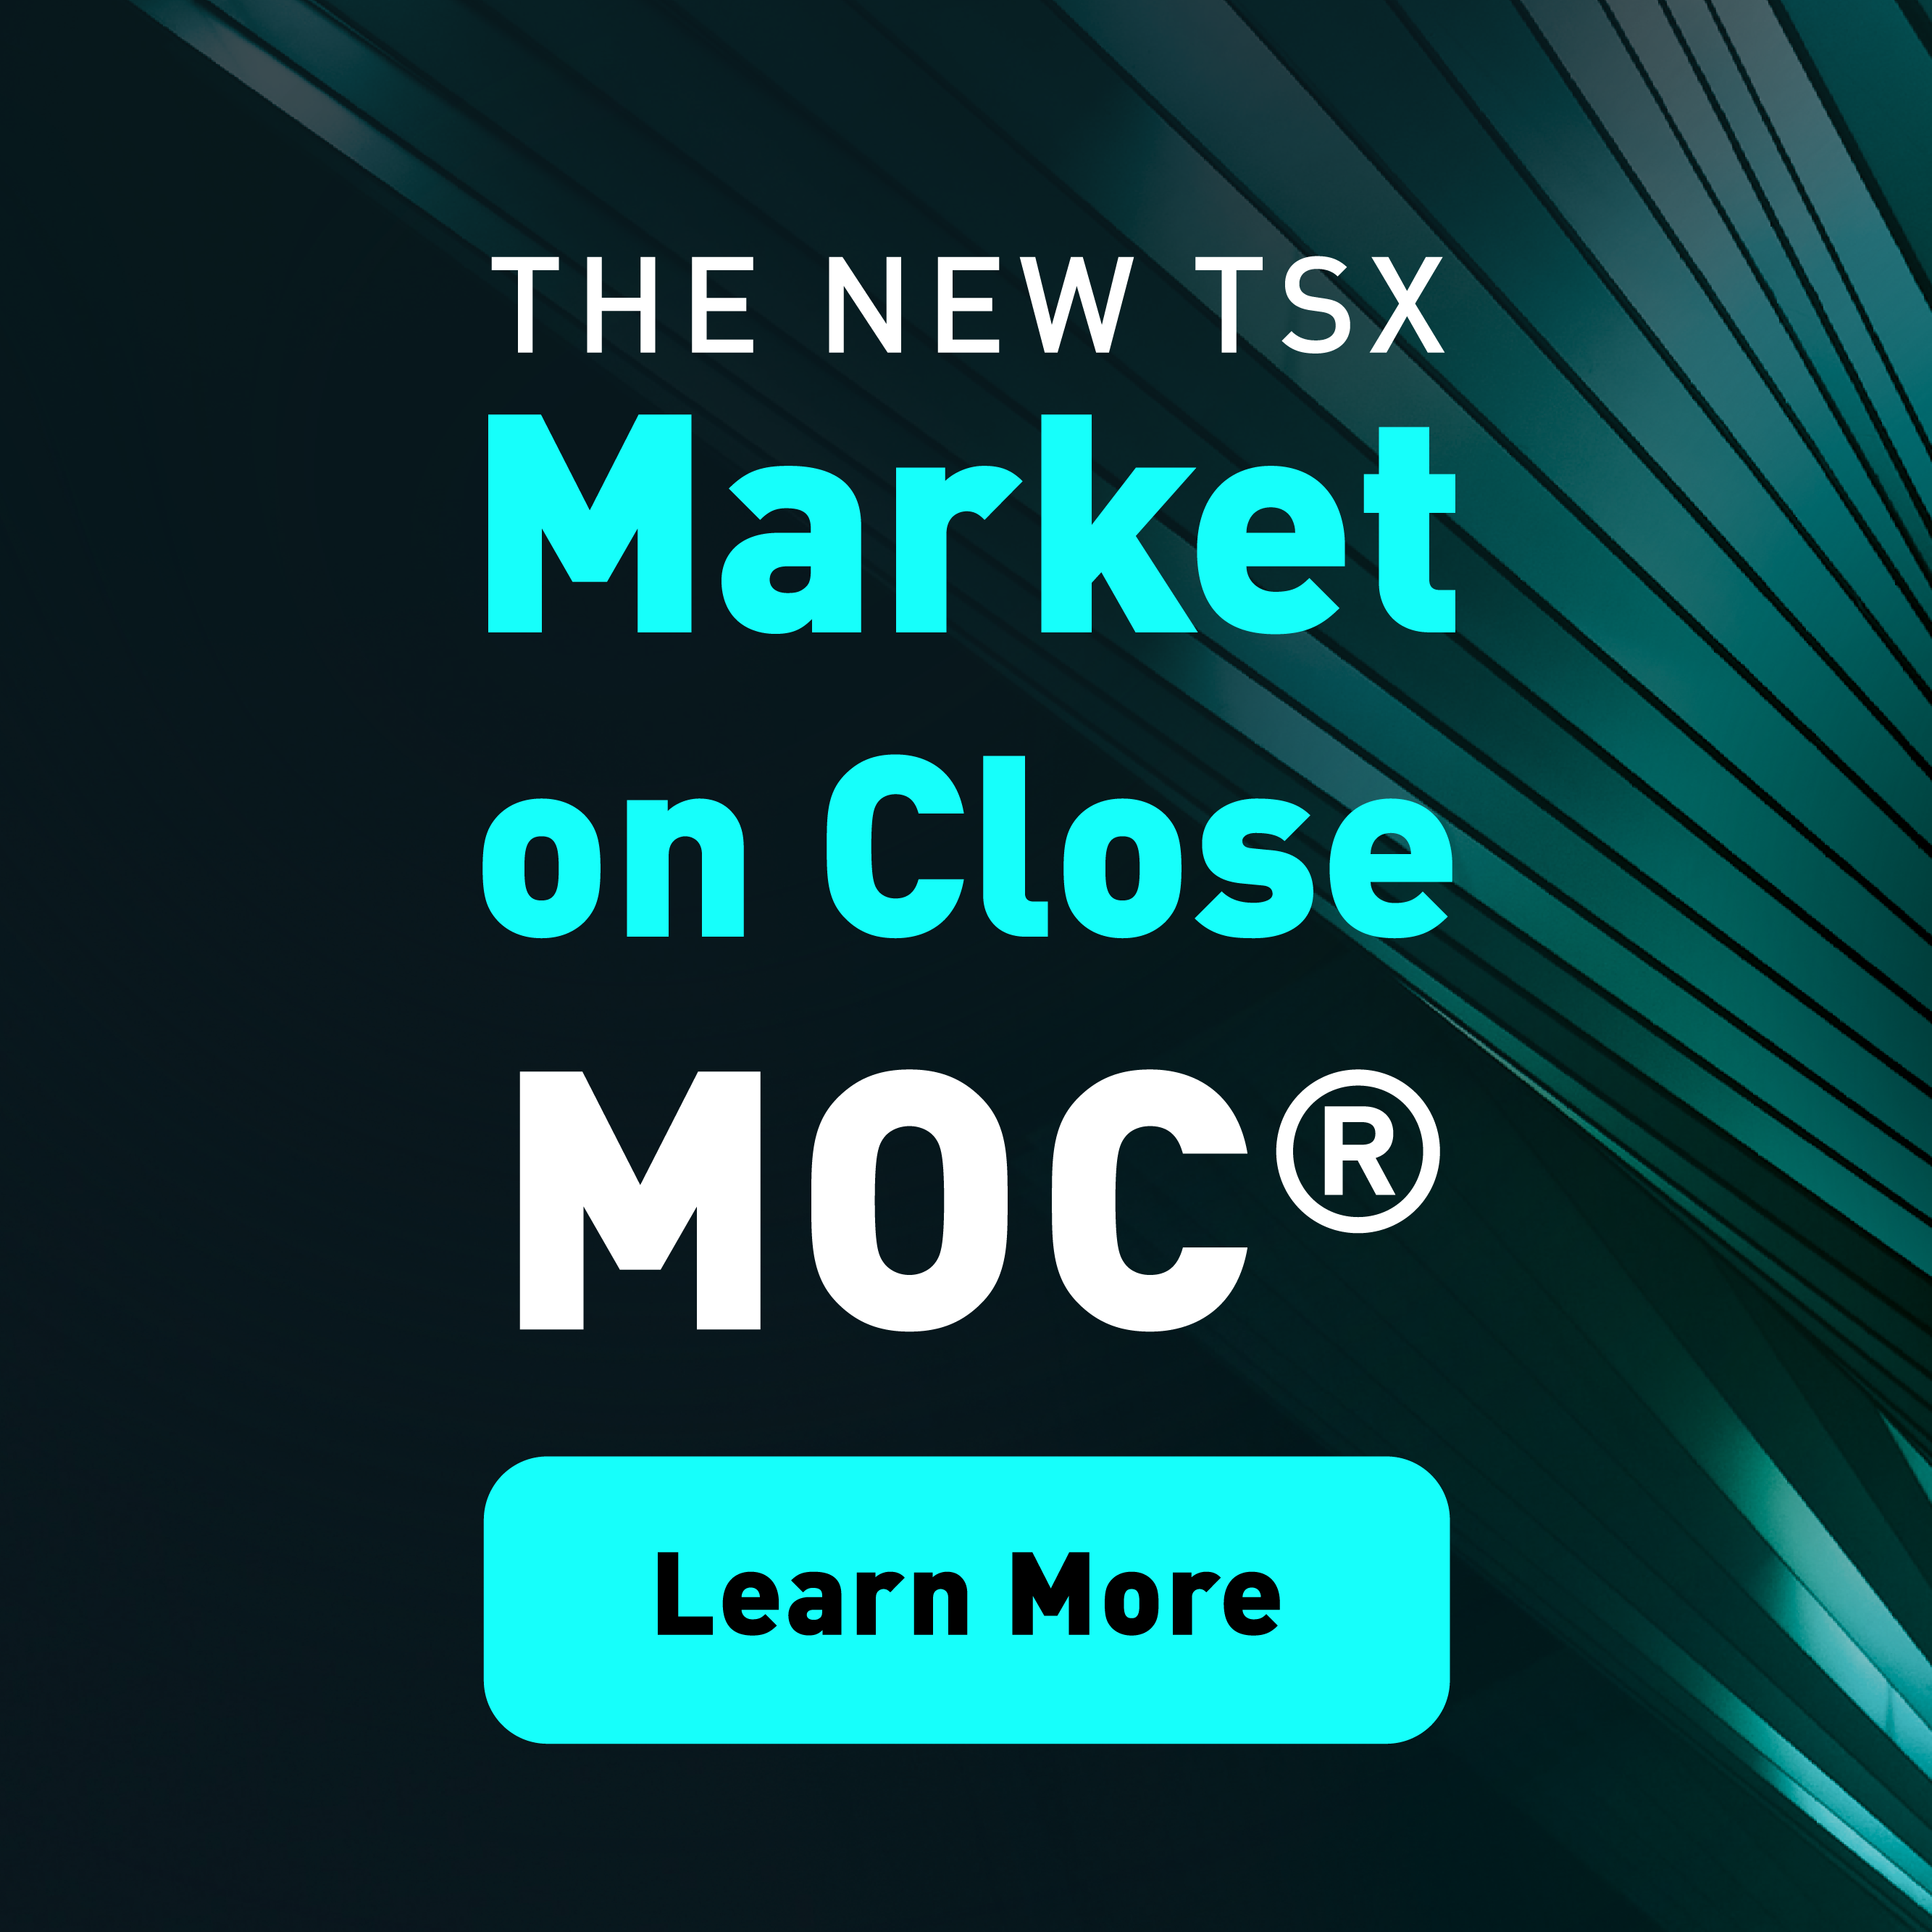 The News TSX Market on Close